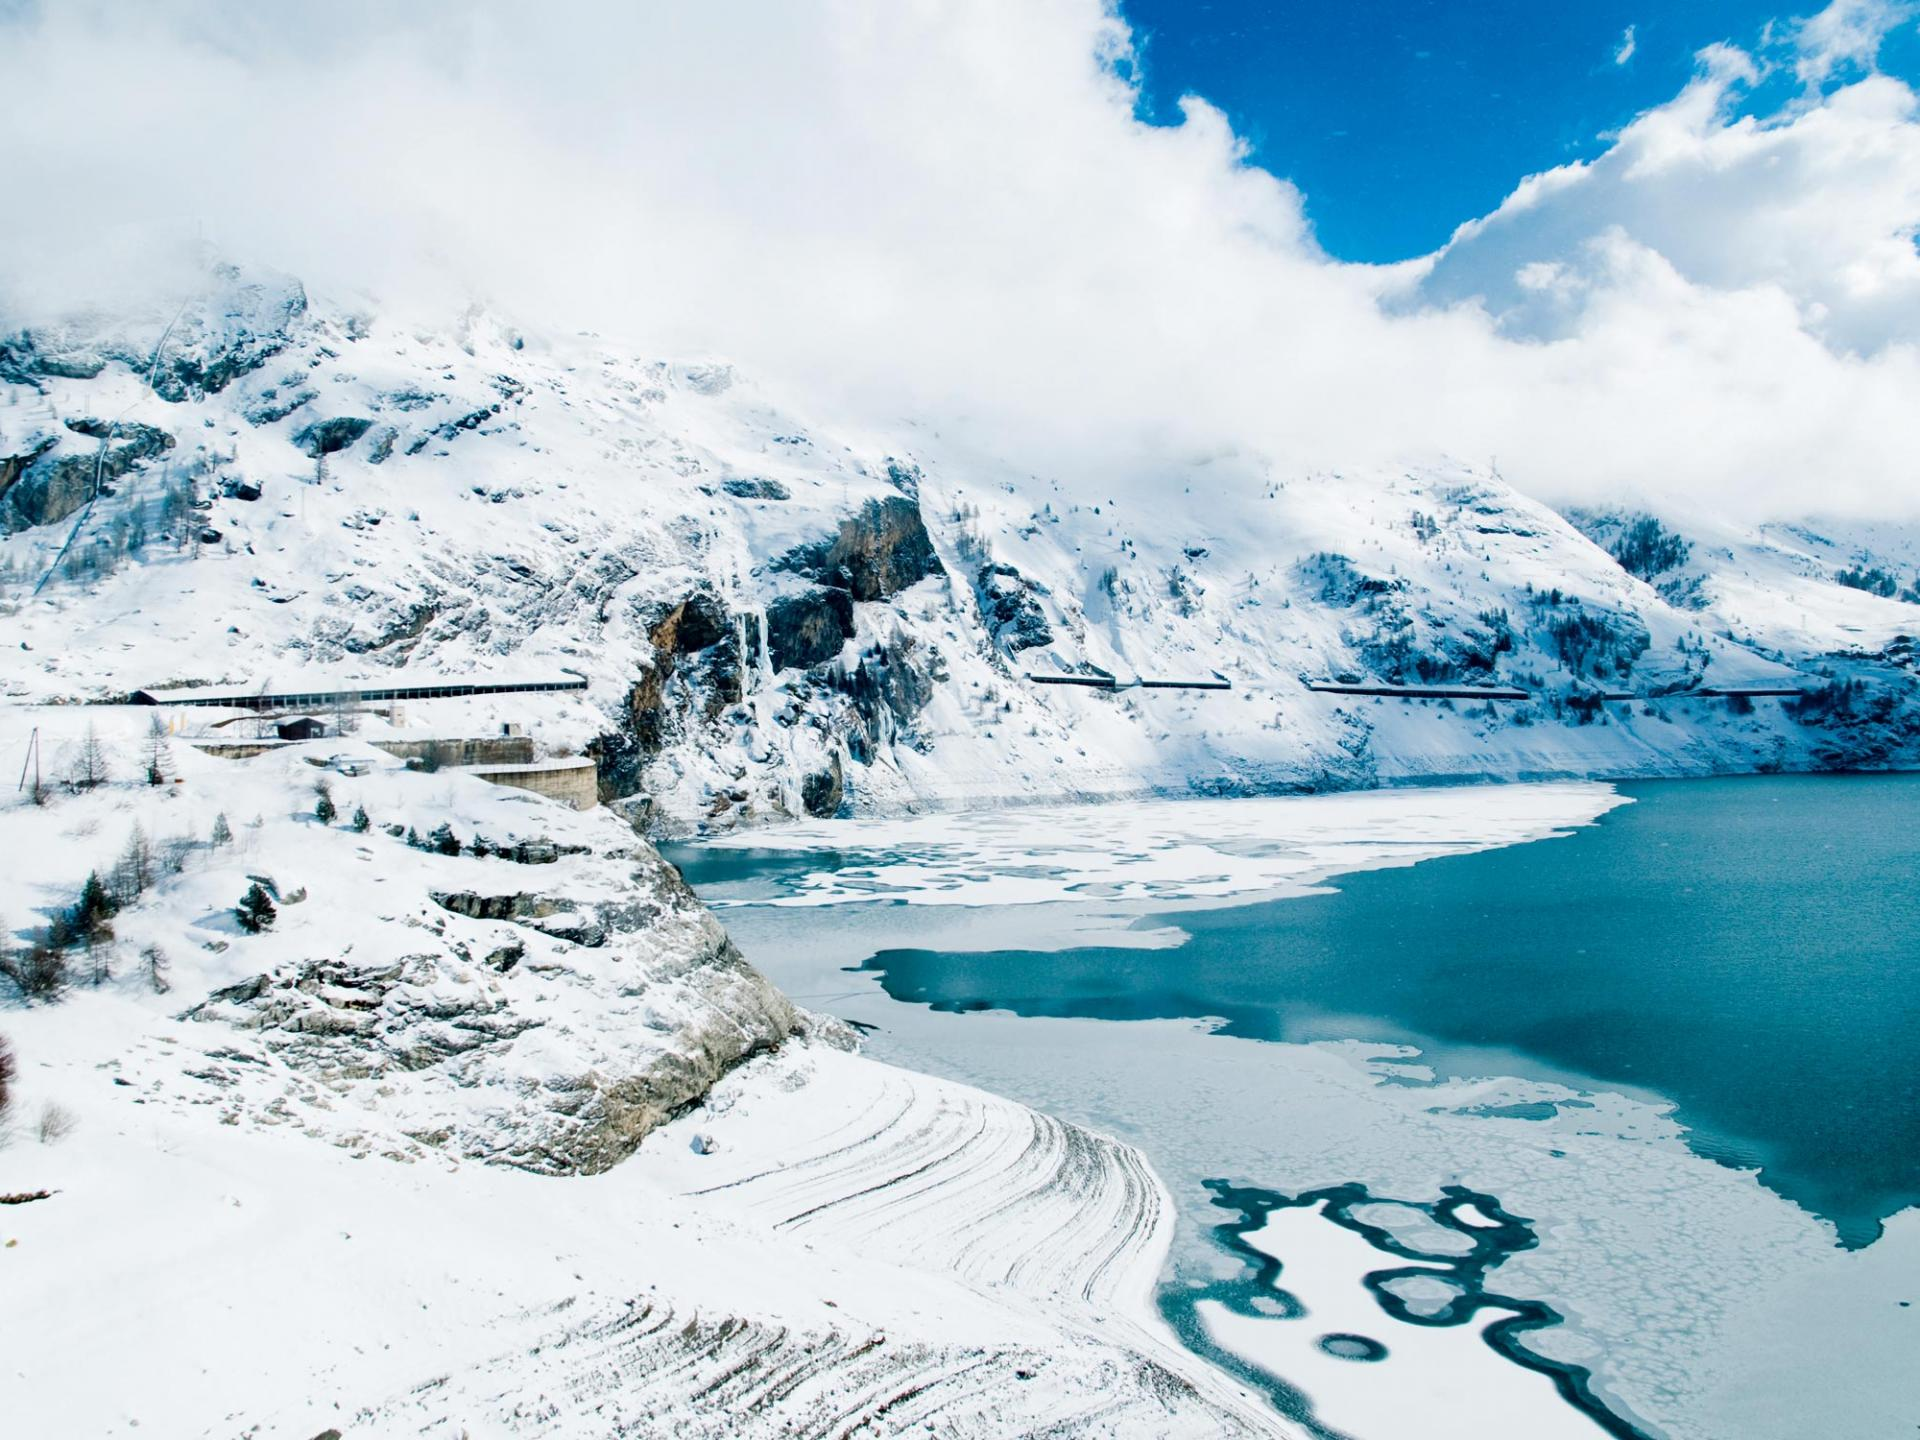 A frozen lake in the French Alps